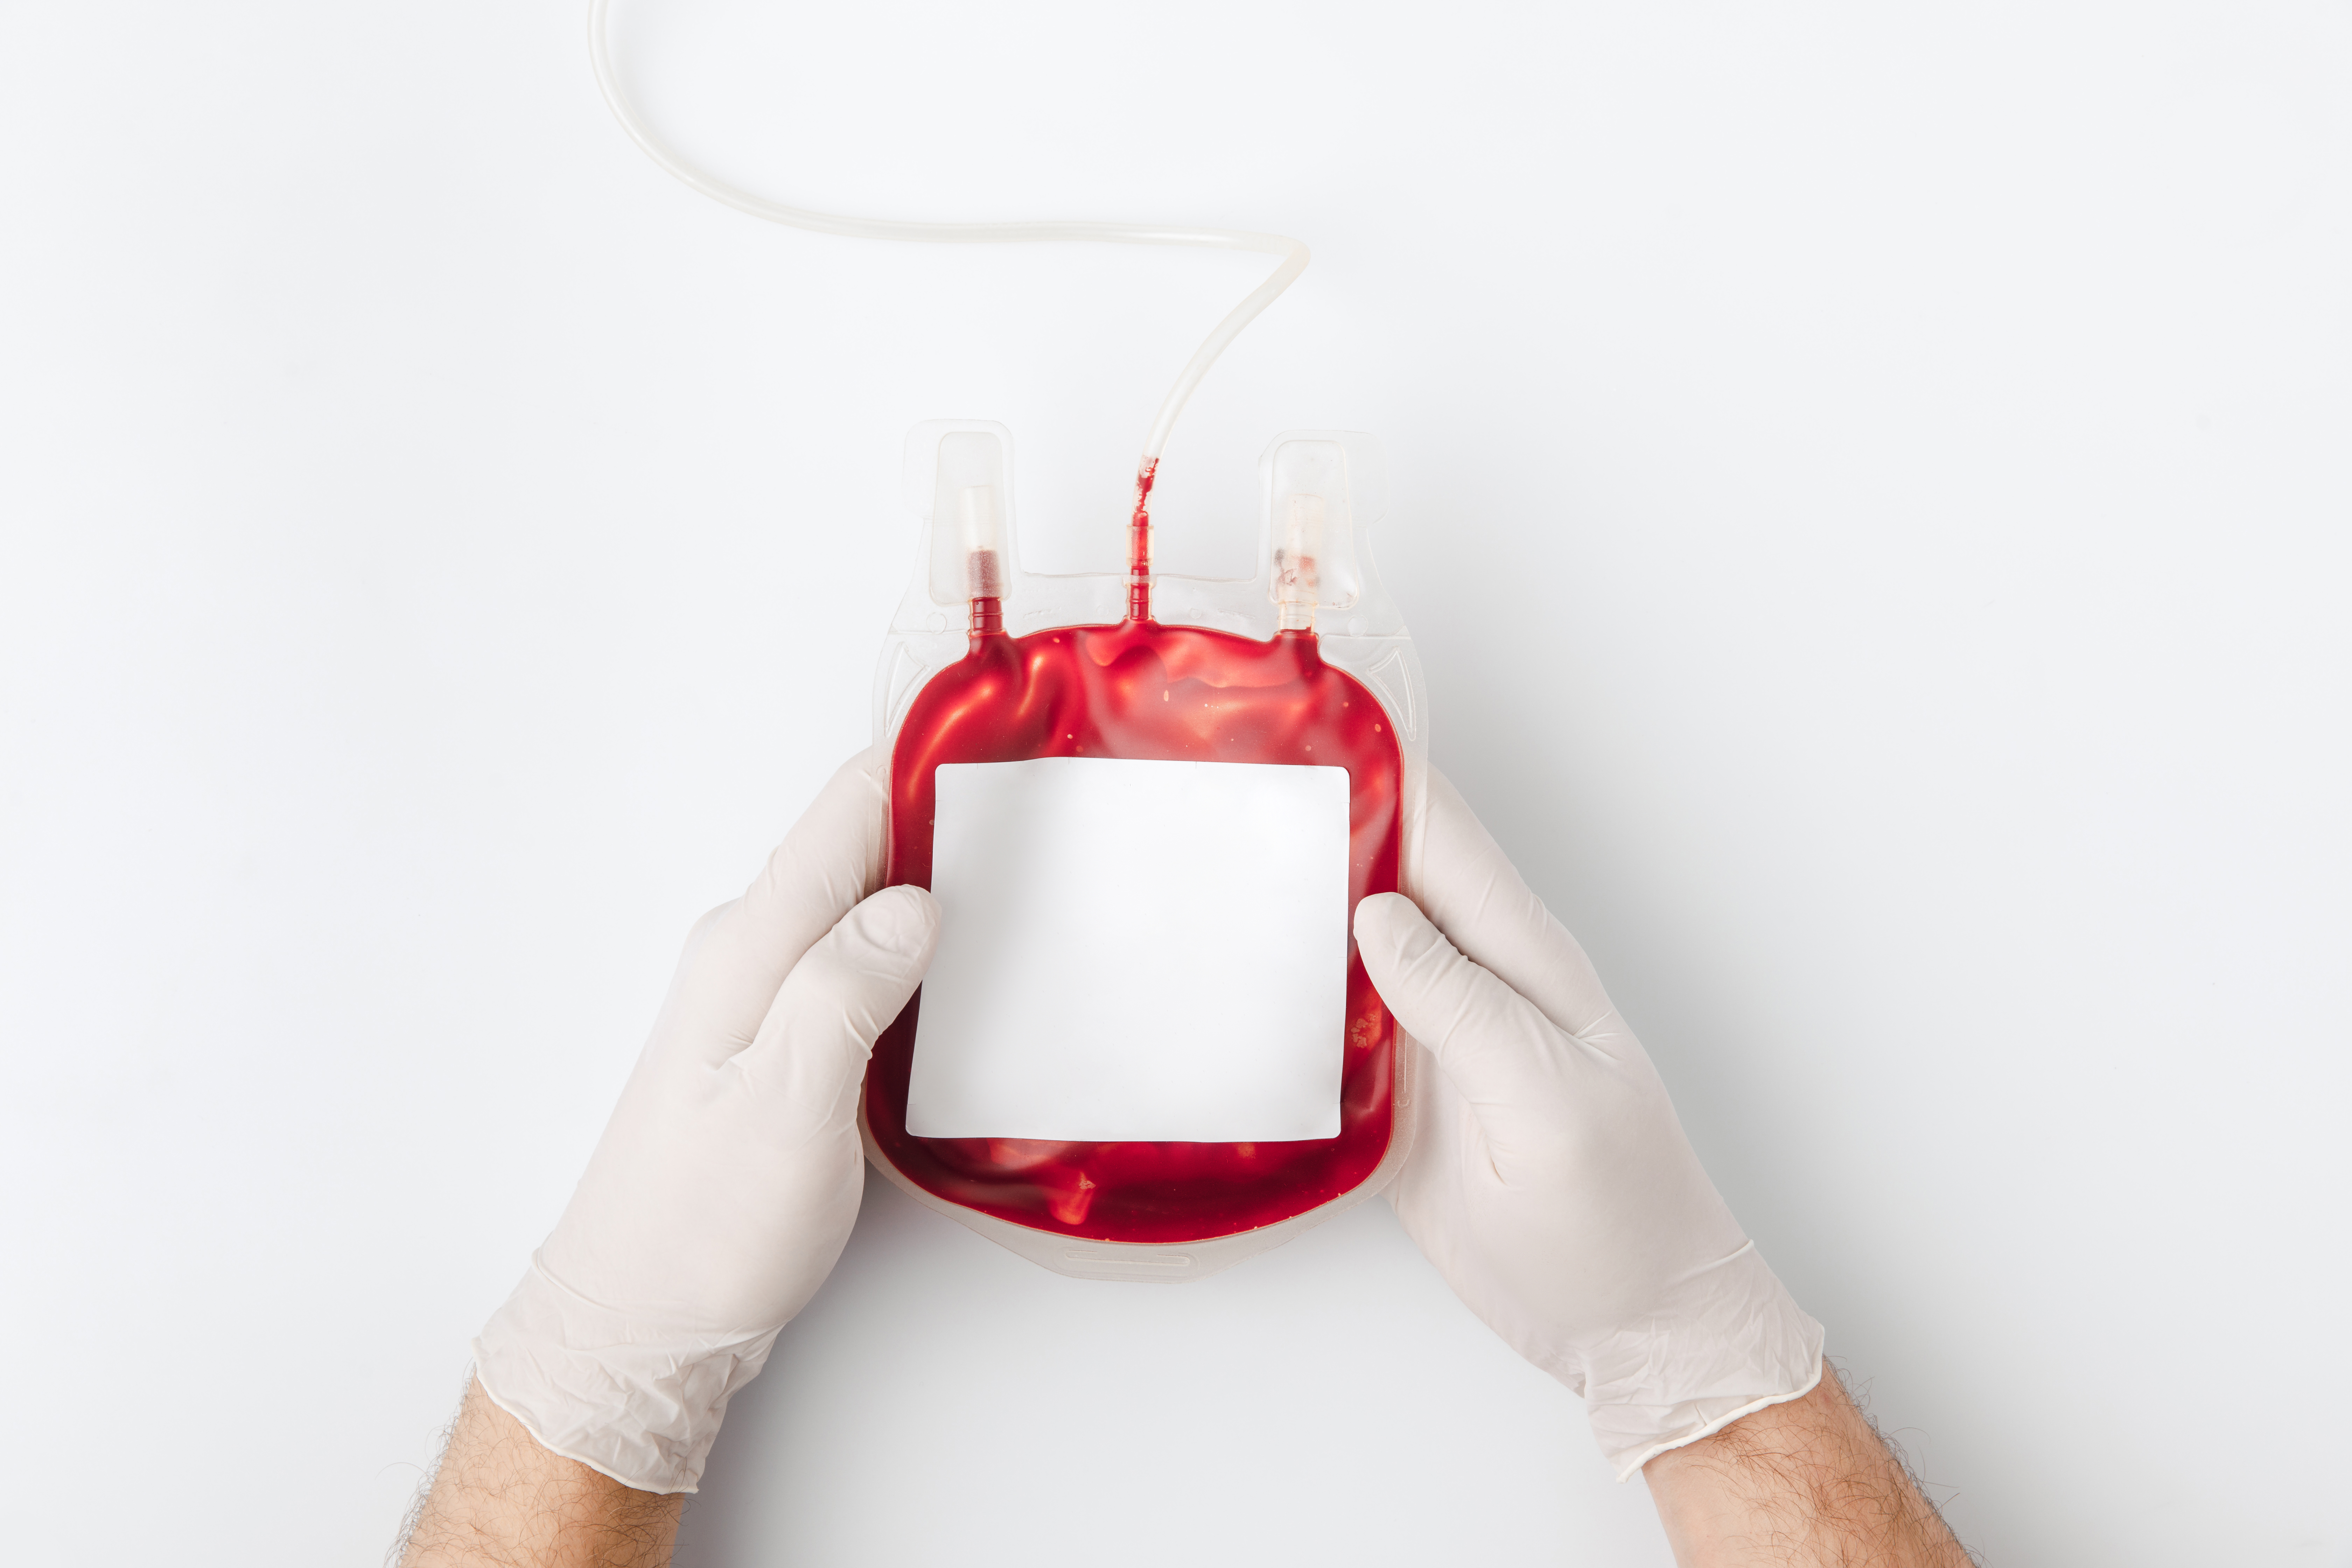 Usually, 180-200ml of blood constitutes a unit. Those with thalassaemia require 10-15ml of blood for every kilogram of a person's body weight, a doctor said